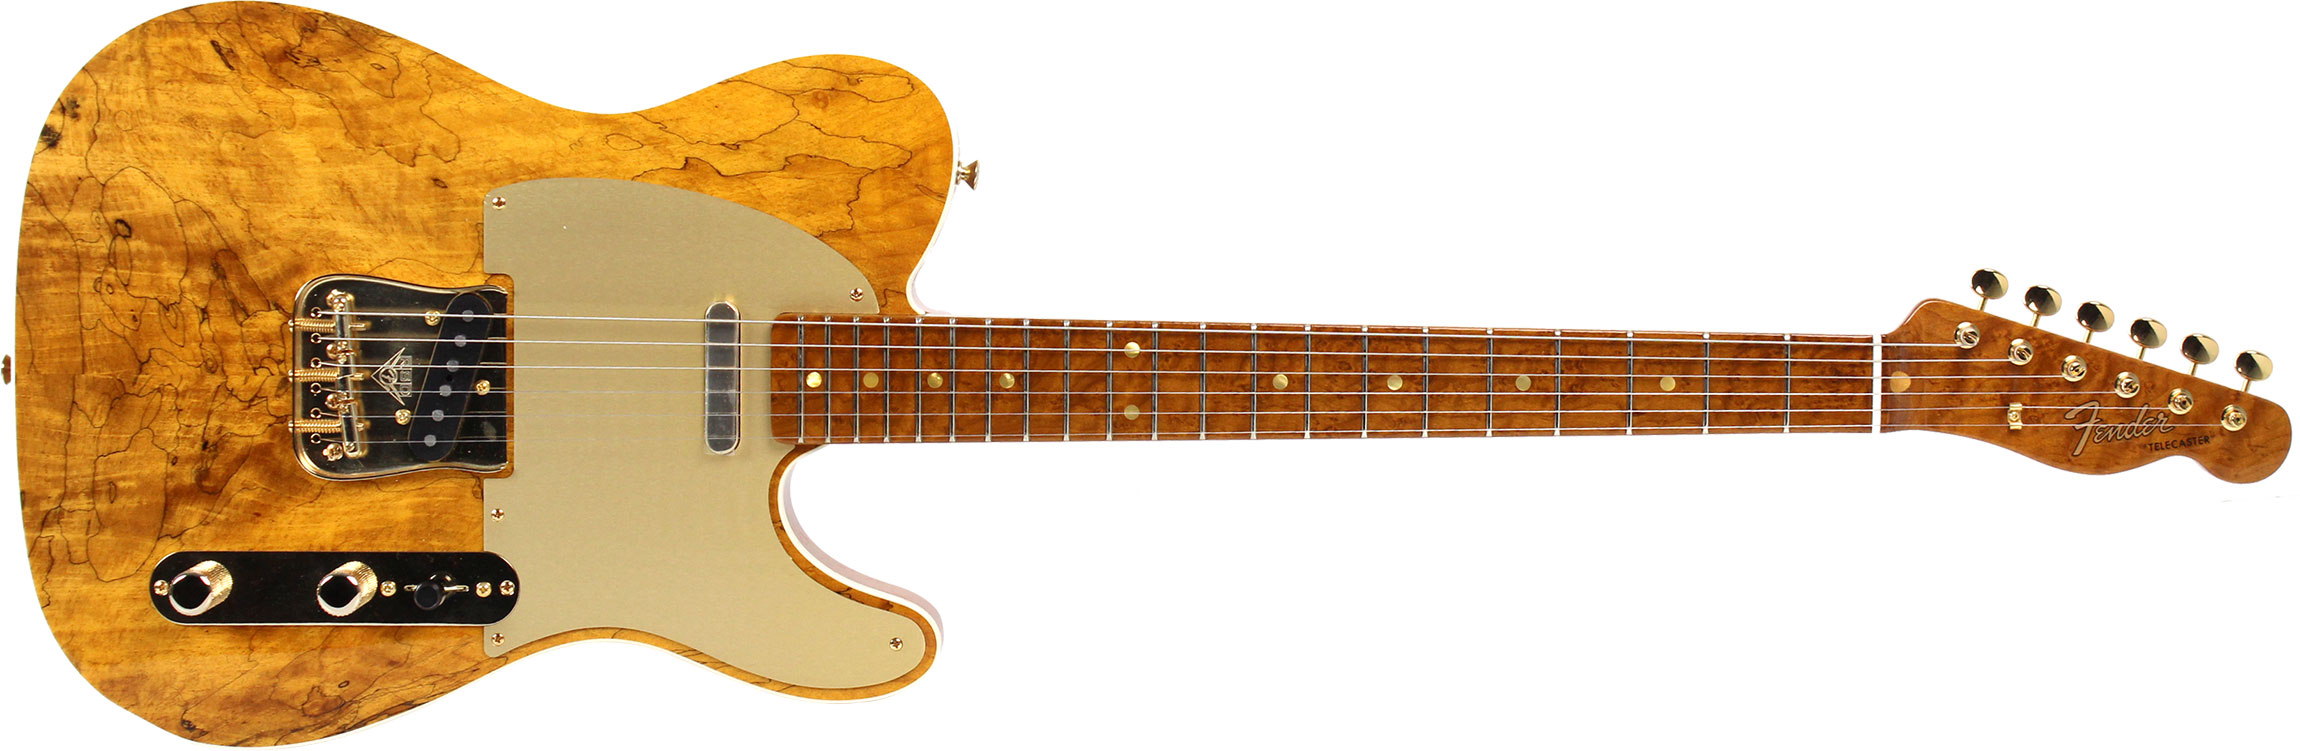 GUITARRA FENDER 152 1140 - TELECASTER ARTISAN SPALTED MAPLE - 821 - NATURAL